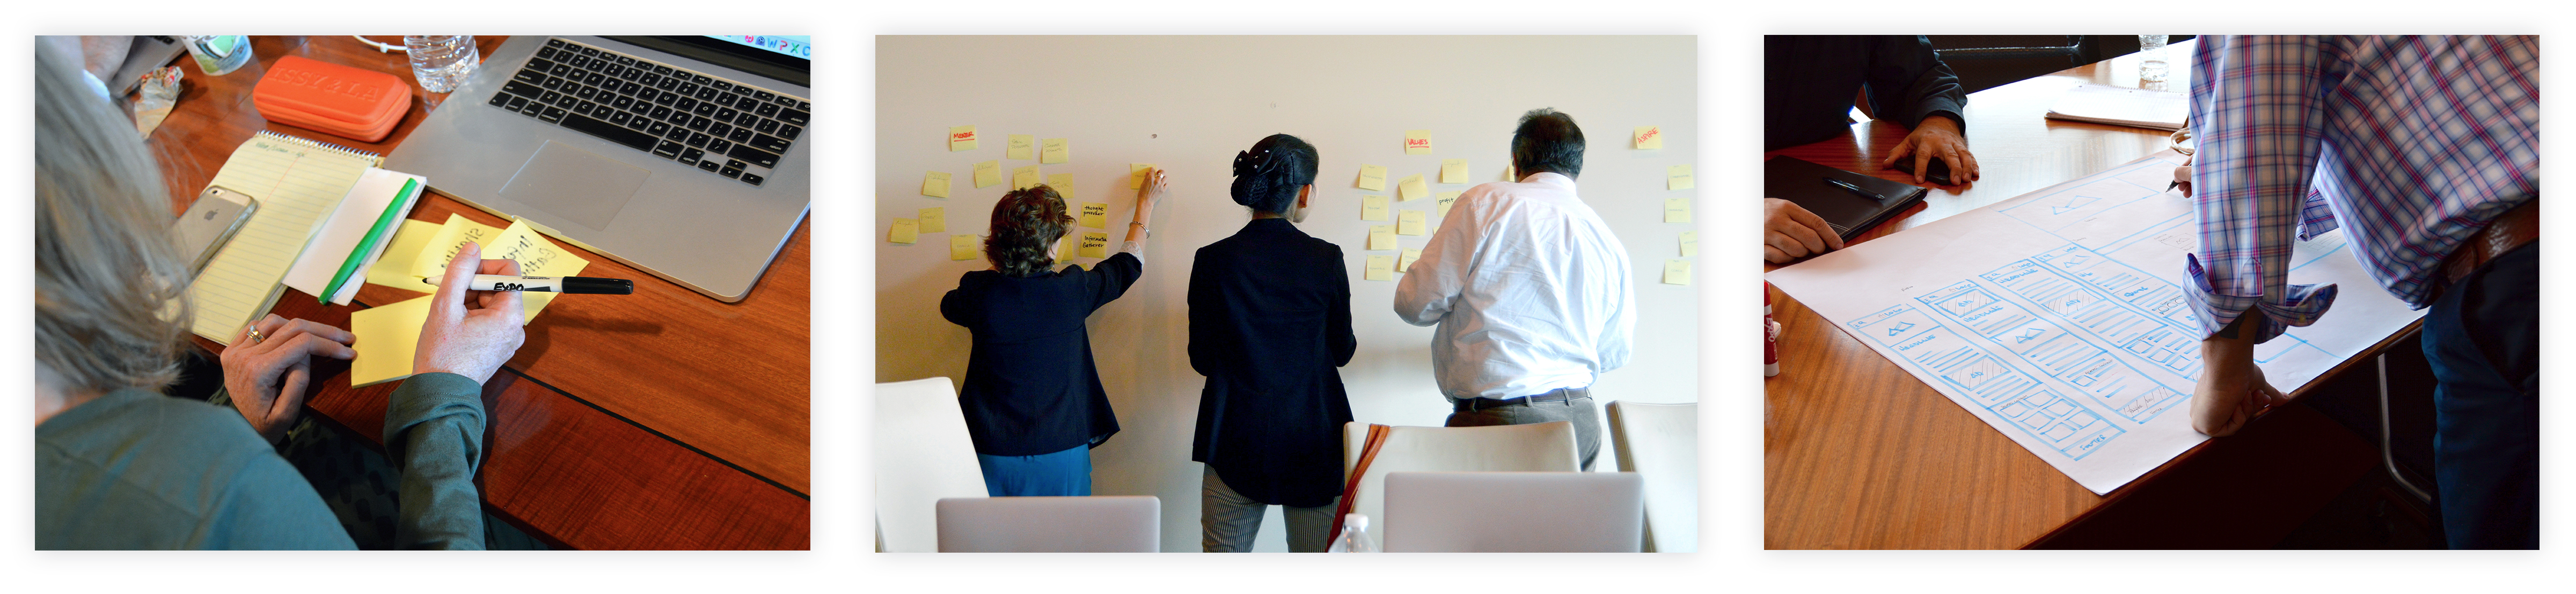 A set of three photos - a person writing on yellow post its with a sharpie, three people adding post its to a group on a white wall, and a person leaning over a blue highlighter sketch of a website